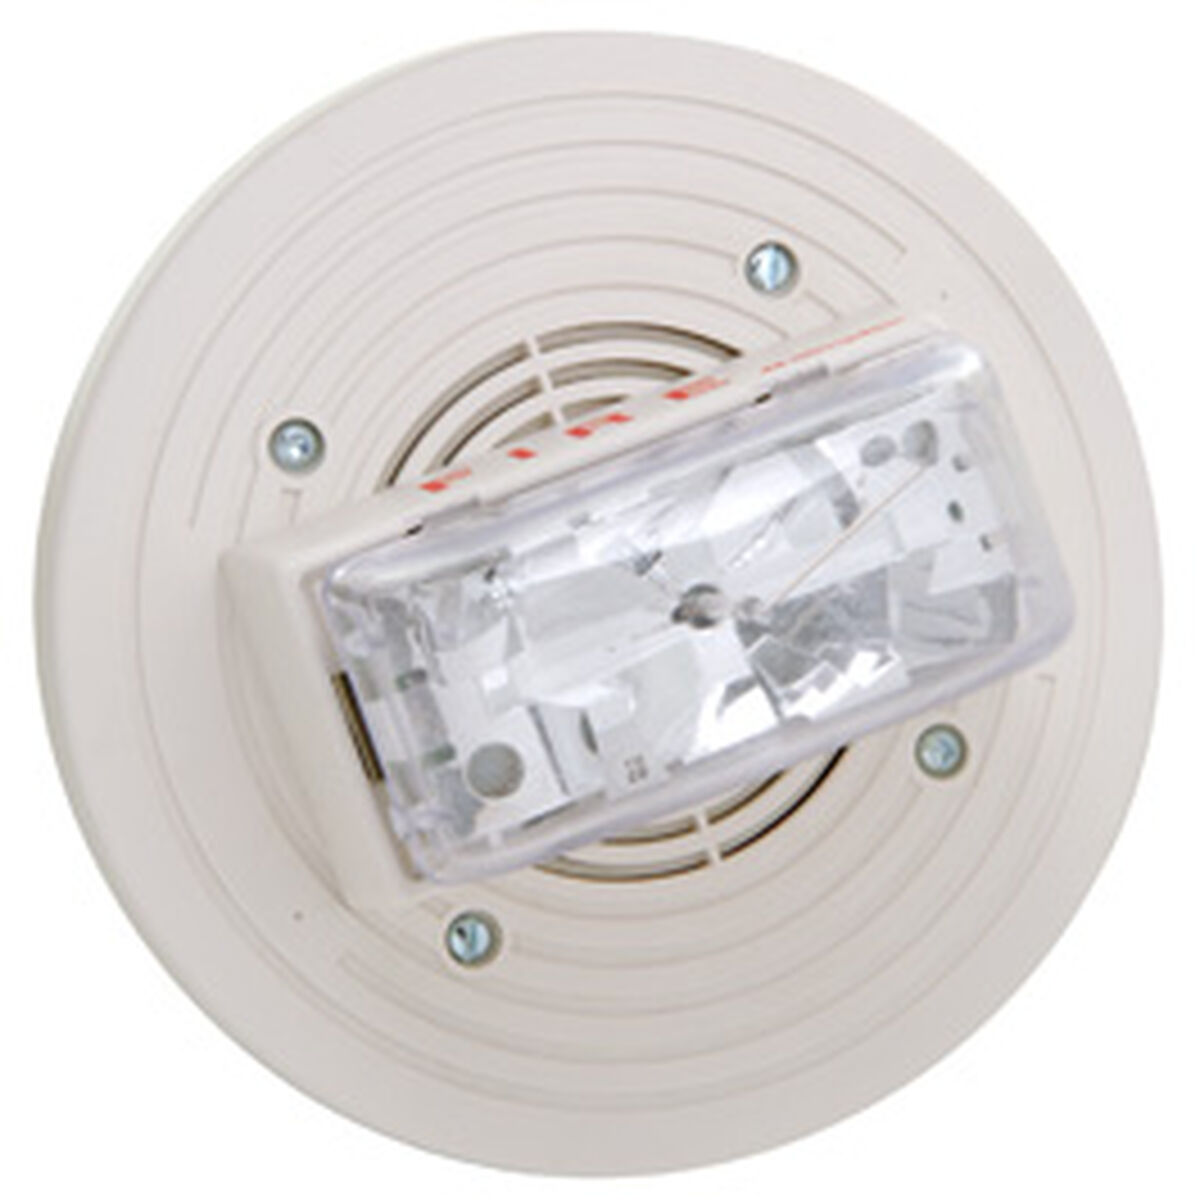 Speakervisible 24vdc 15cd Ceiling Mt Wht